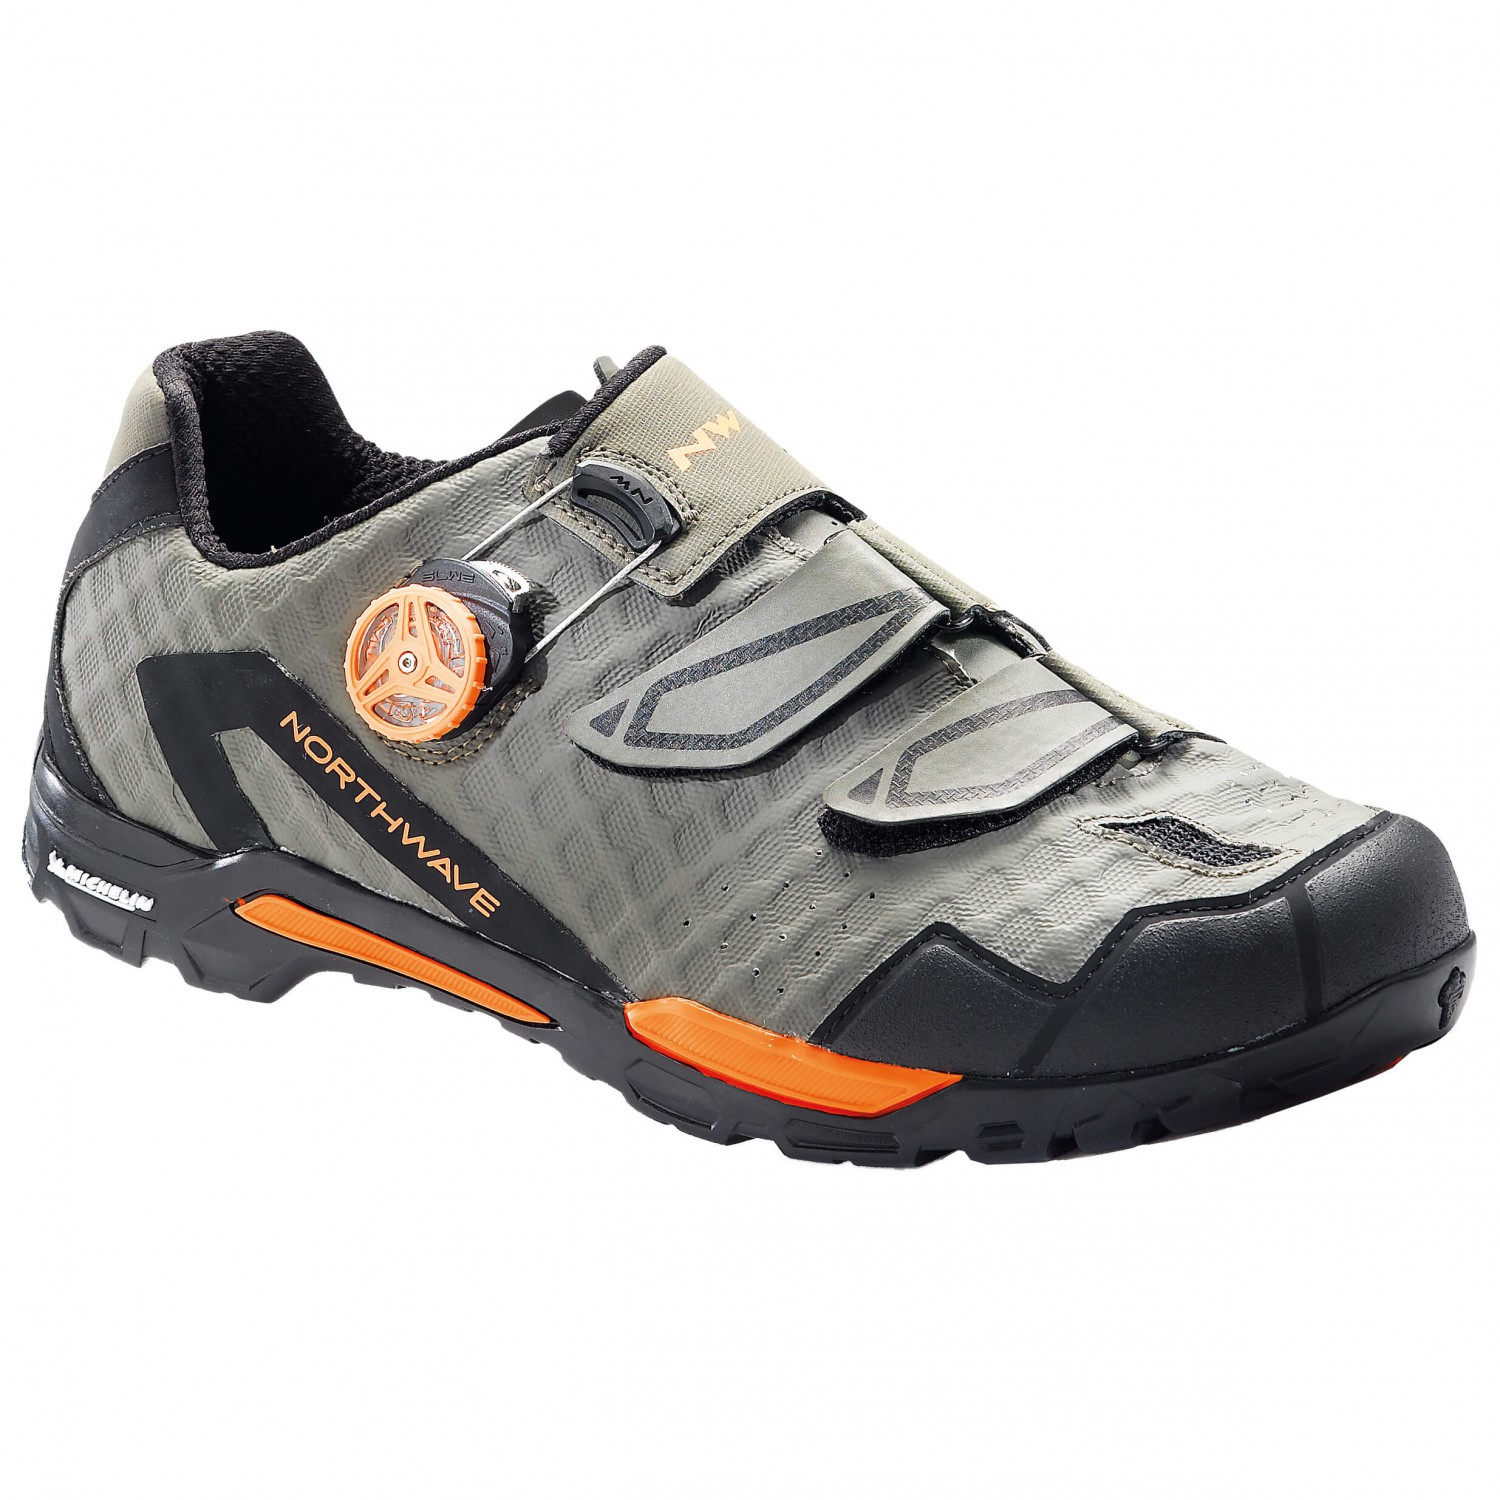 Northwave - Outcross Plus - Radschuhe Forest